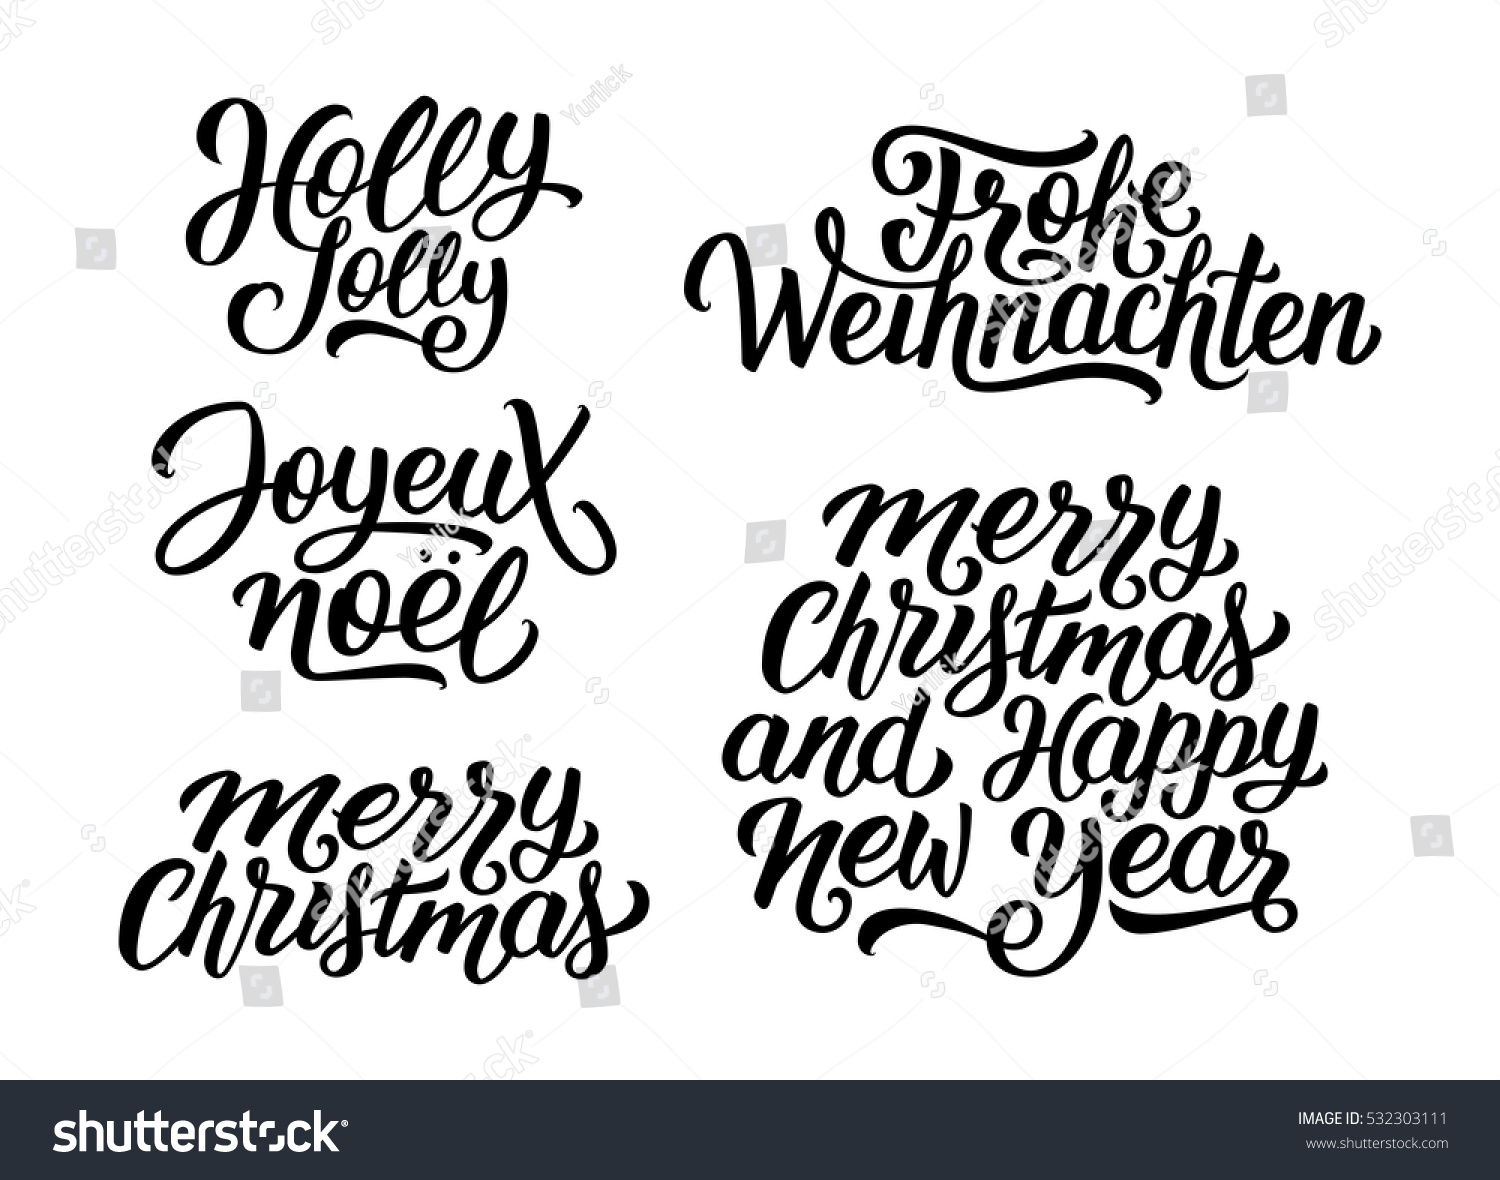 Merry Christmas Happy New Year Vector Stock Vector Royalty Free